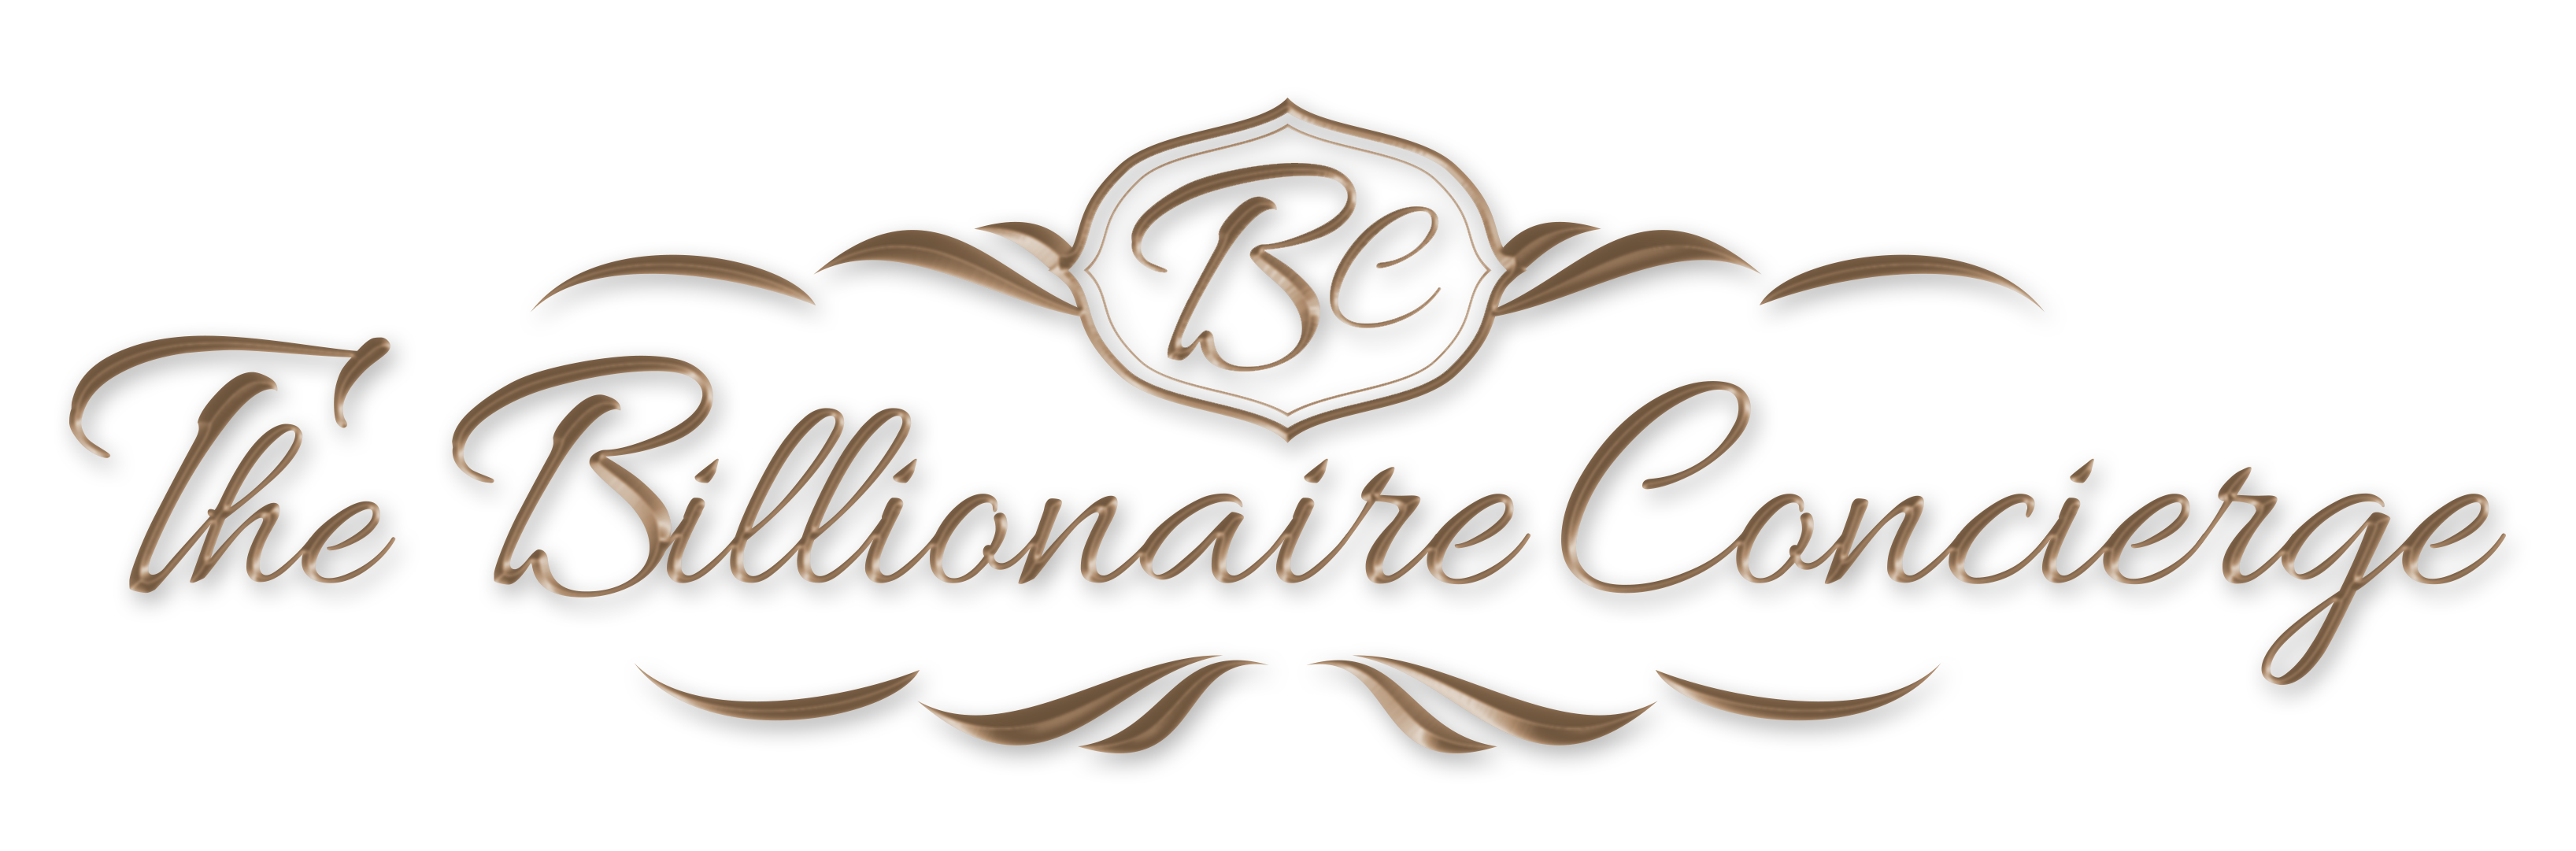 The billionaire concierge is offering luxury concierge and lifestyle management service worldwide